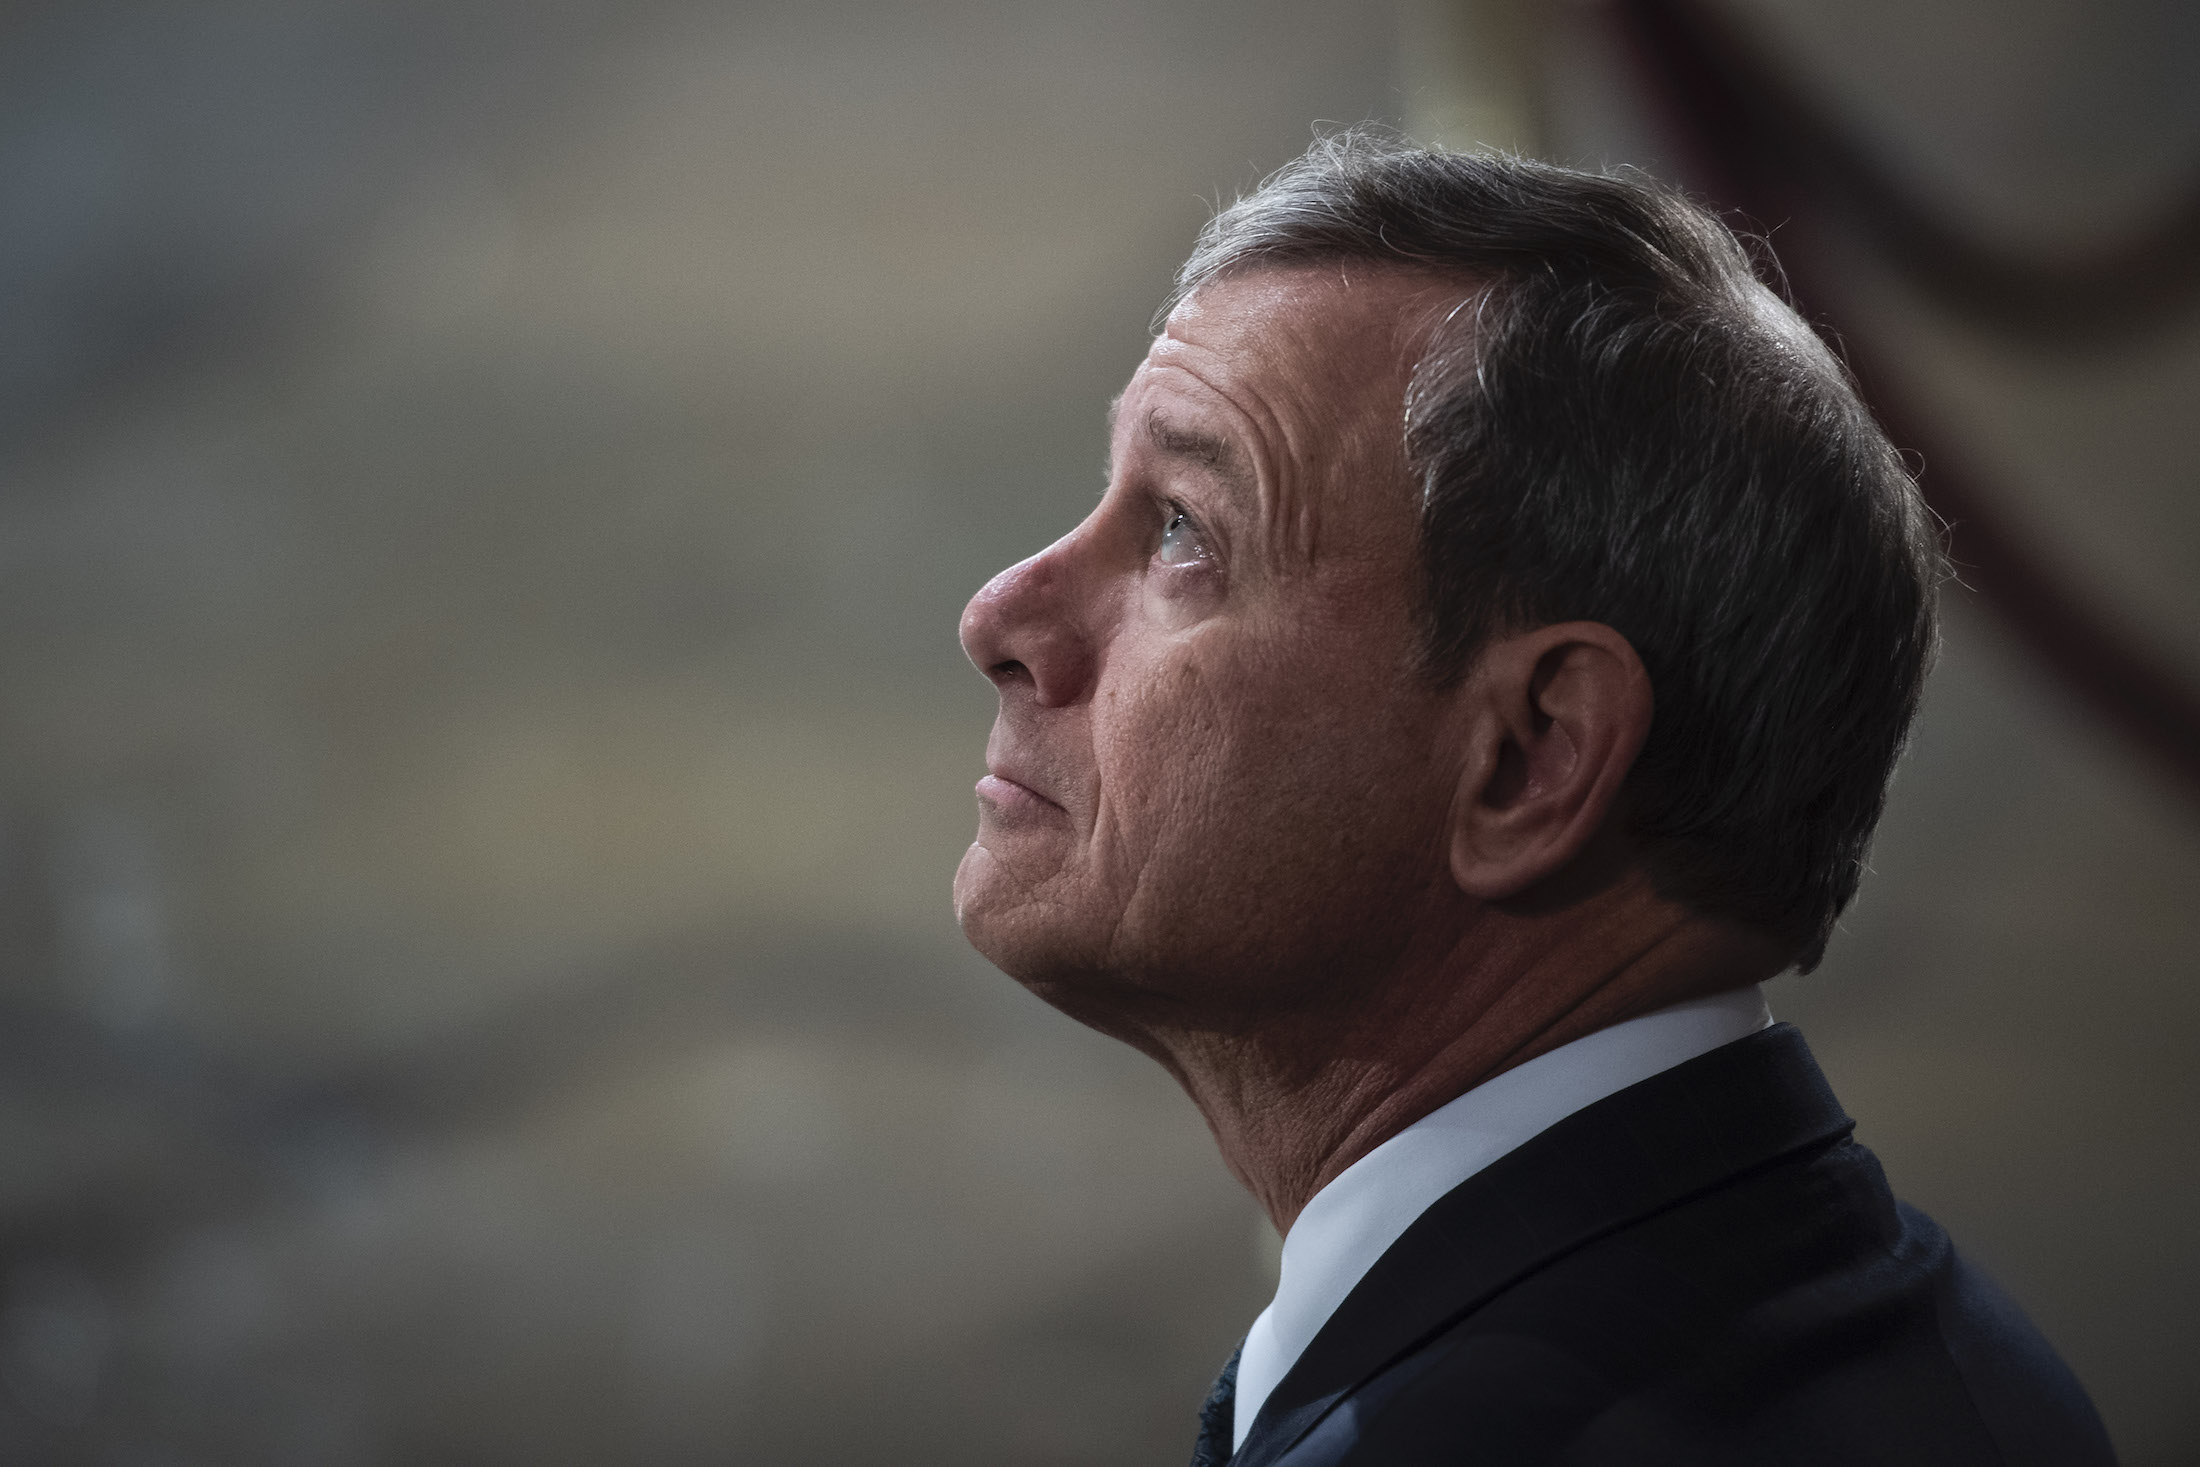 U.S. Supreme Court Chief Justice John G. Roberts, Jr. waits for the arrival of former U.S. President George H.W. Bush at the U.S Capitol Rotunda on December 03, 2018 in Washington, DC.